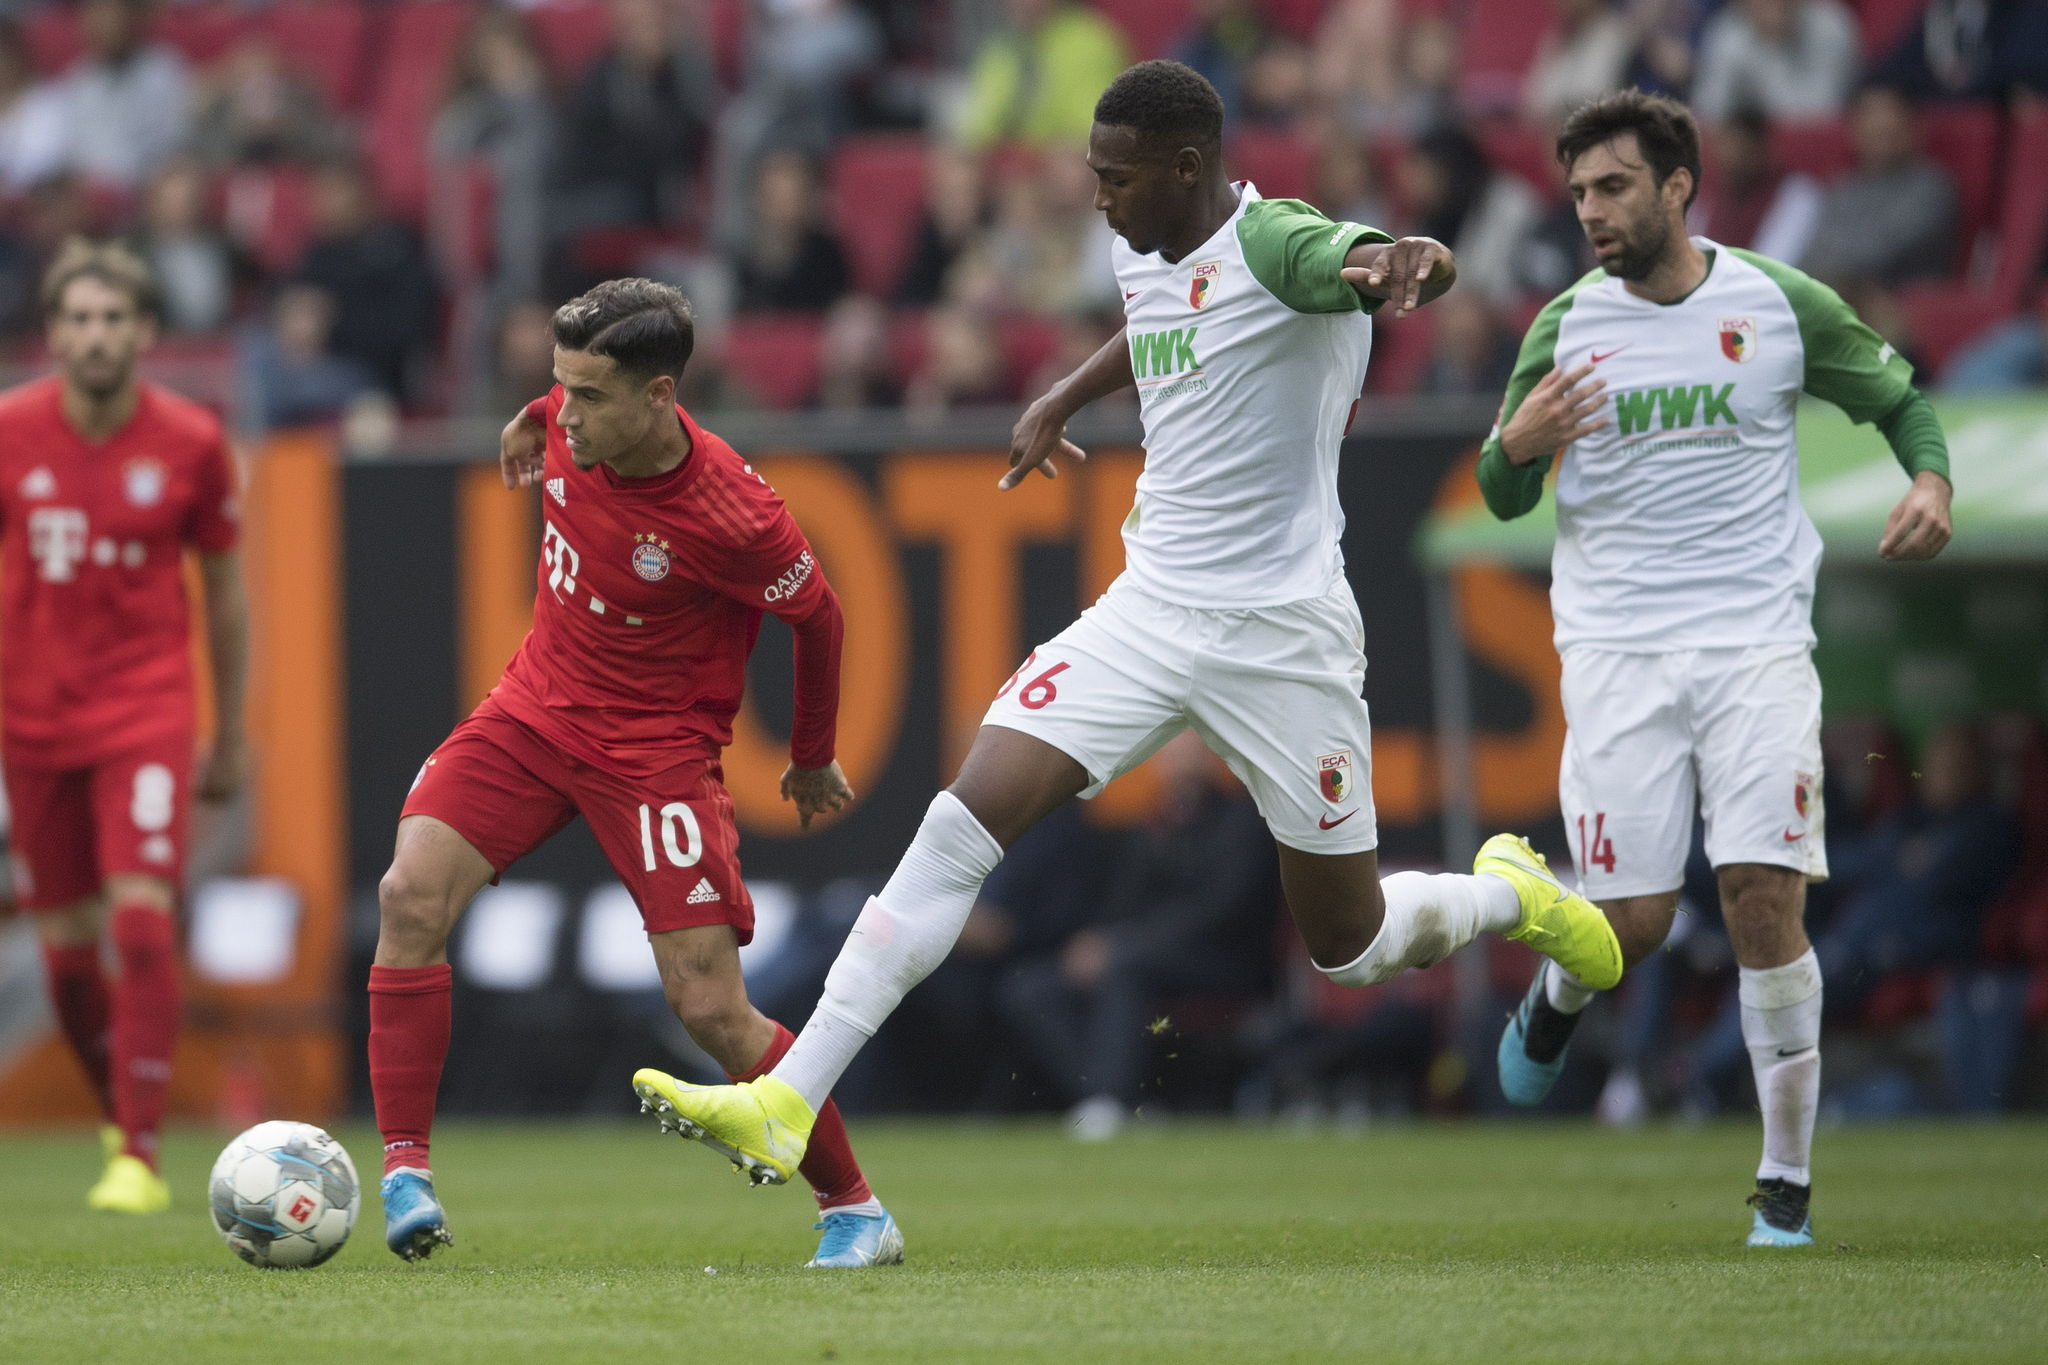 Augsburg (Germany), 19/10/2019.- <HIT>Bayern</HIT>s Philippe Coutinho (L) and Augsburgs Reece Oxford (R) during the German Bundesliga soccer match between FC Augsburg and FC <HIT>Bayern</HIT> Munich in Augsburg, Germany, 19 October 2019. (Alemania) EFE/EPA/ANDREAS SCHAAD CONDITIONS - ATTENTION: The DFL regulations prohibit any use of photographs as image sequences and/or quasi-video